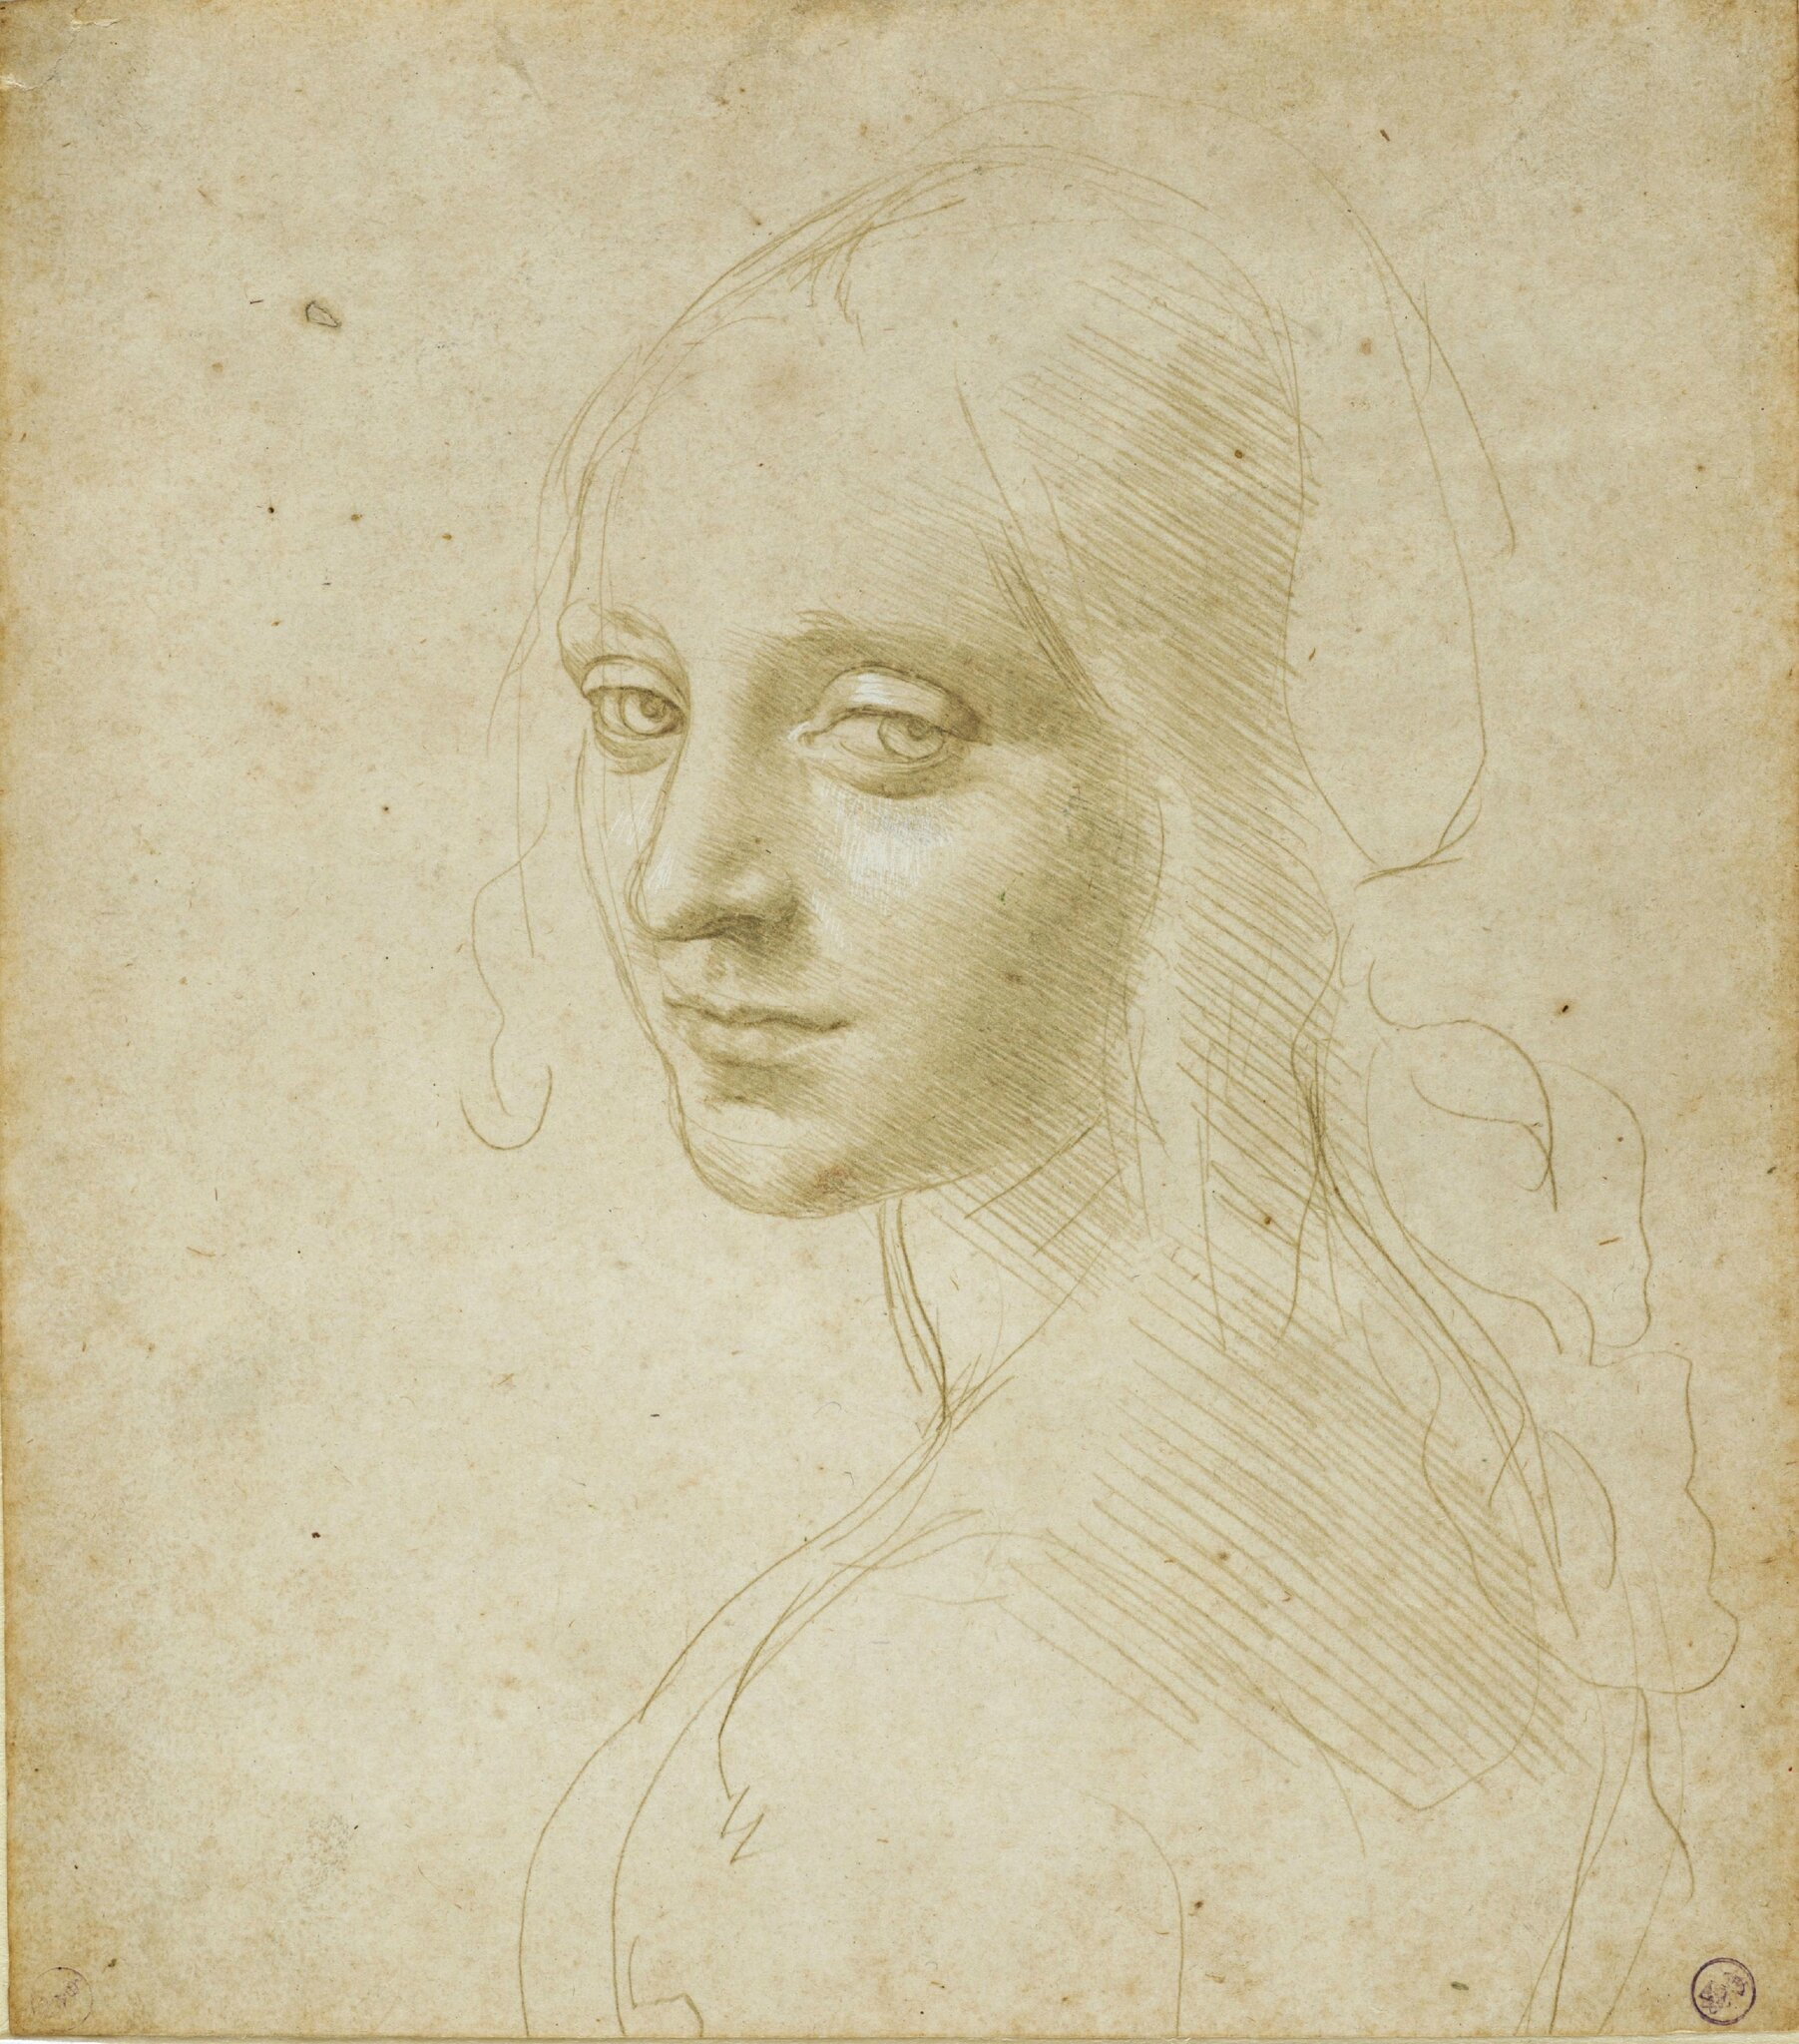 Leonardo da Vinci exhibition offers a very rare look at artist's fascination with beauty